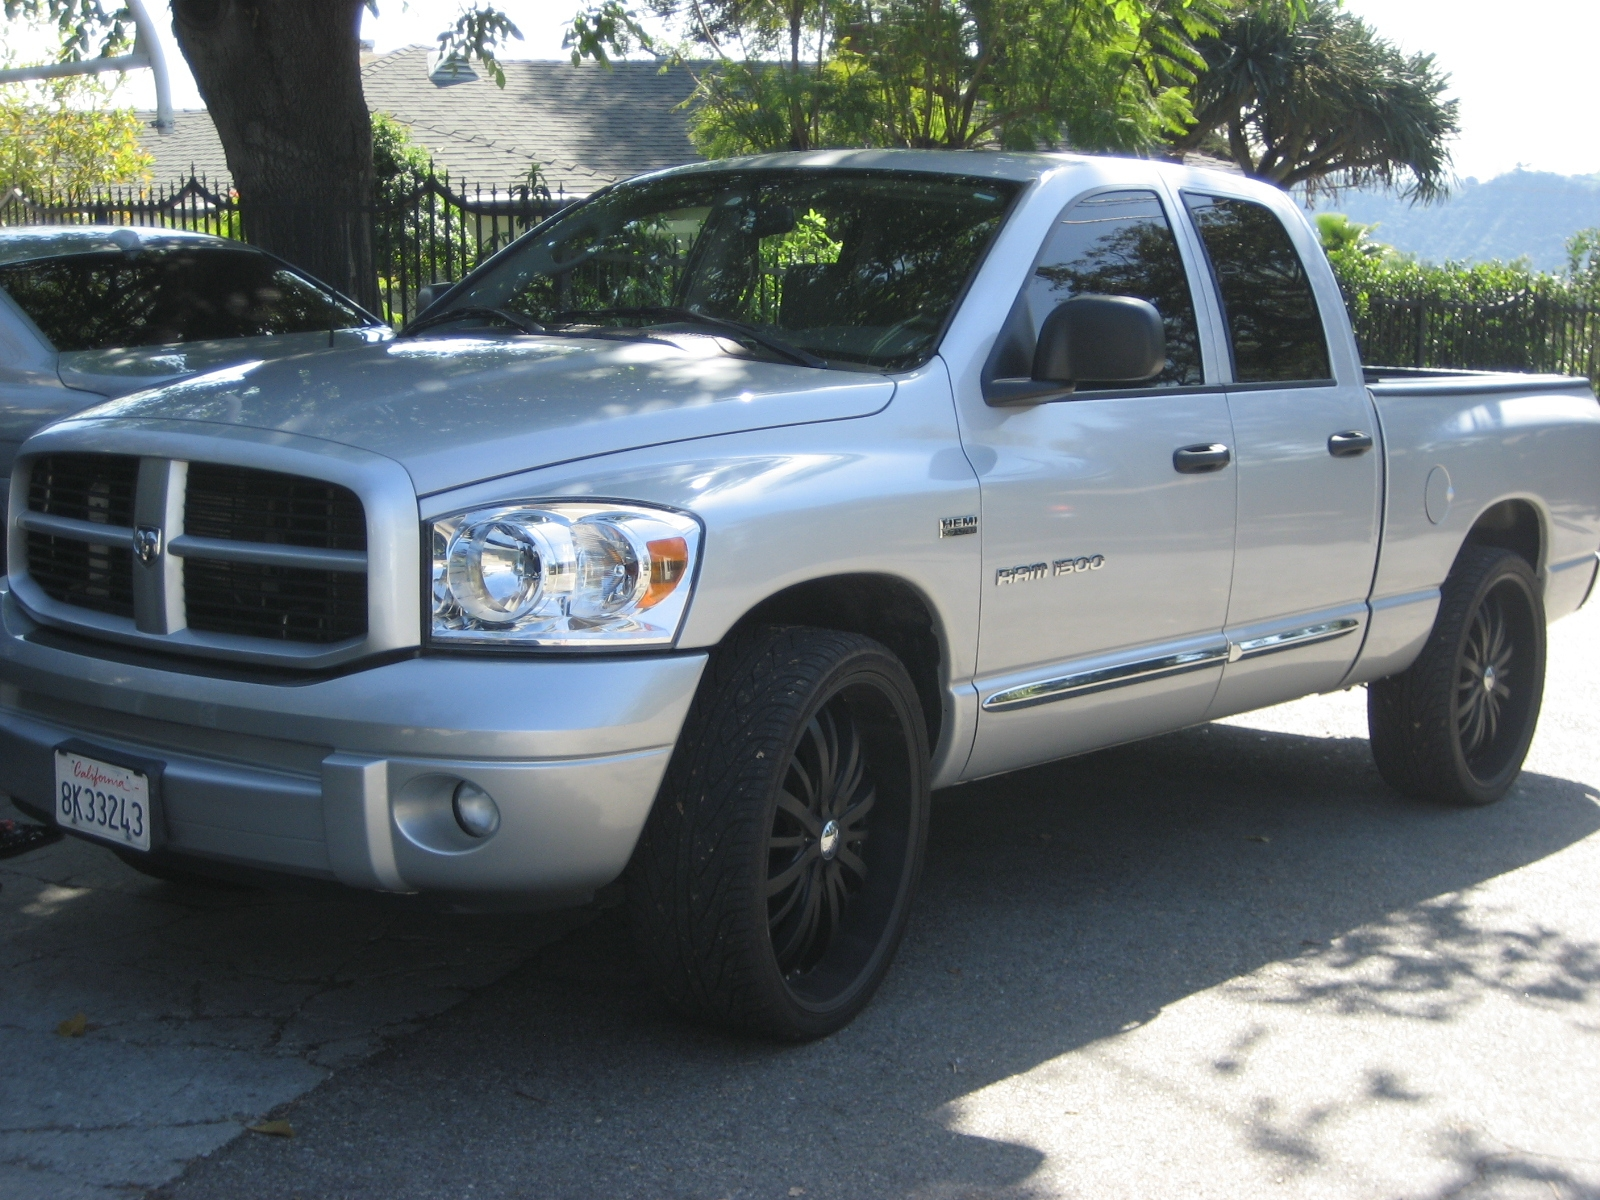 ronquilloz 2007 dodge ram 1500 regular cab specs photos modification info at cardomain. Black Bedroom Furniture Sets. Home Design Ideas